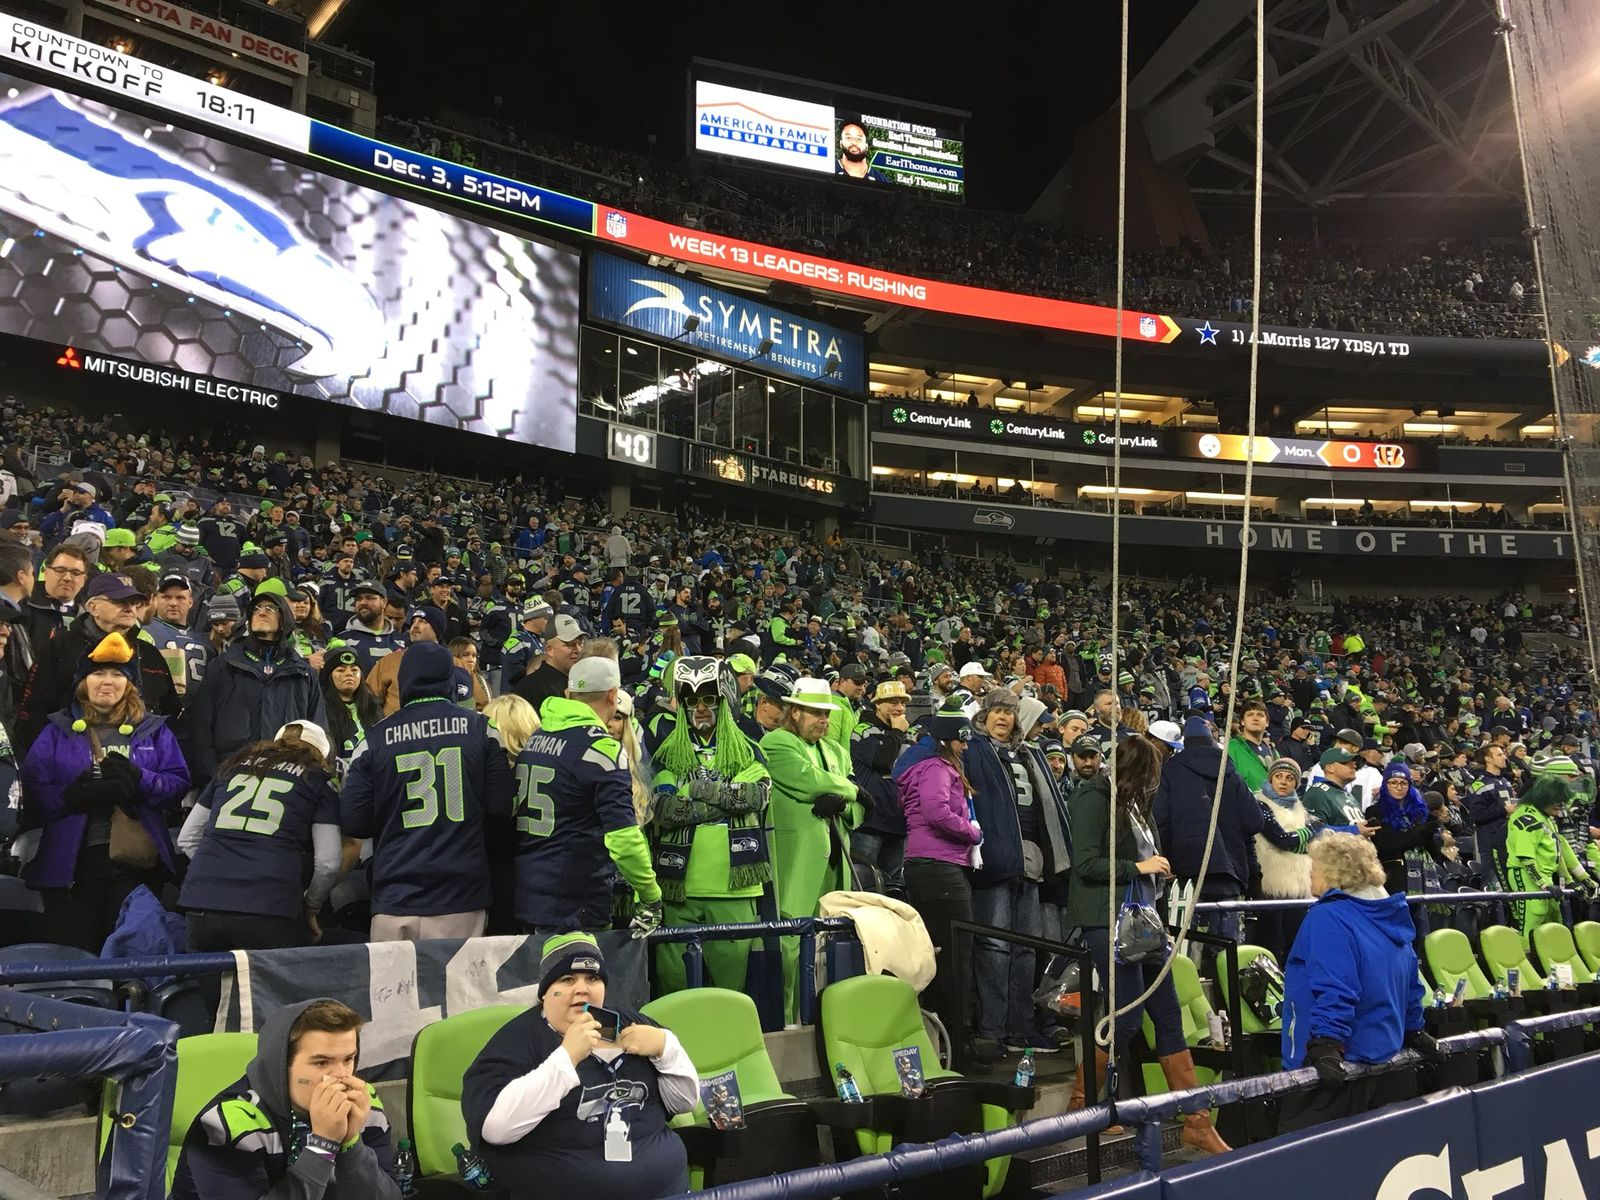 Seahawks game against the Eagles at CenturyLink Field in Seattle (KOMO News){&nbsp;}<p></p>